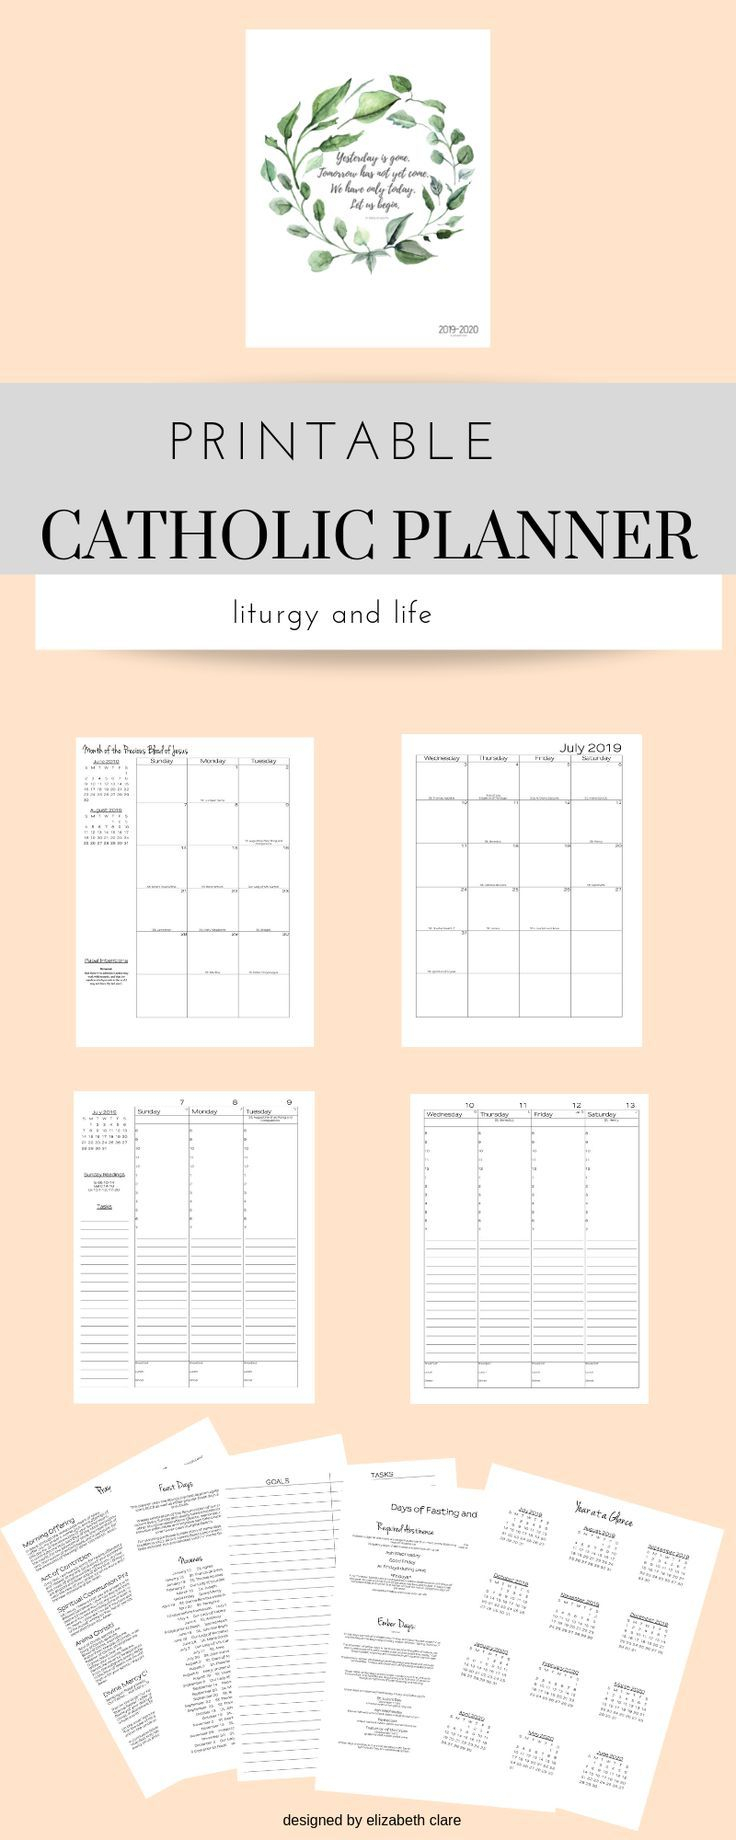 2019 - 2020 Catholic Planner Weekly Printable: Daily Planner